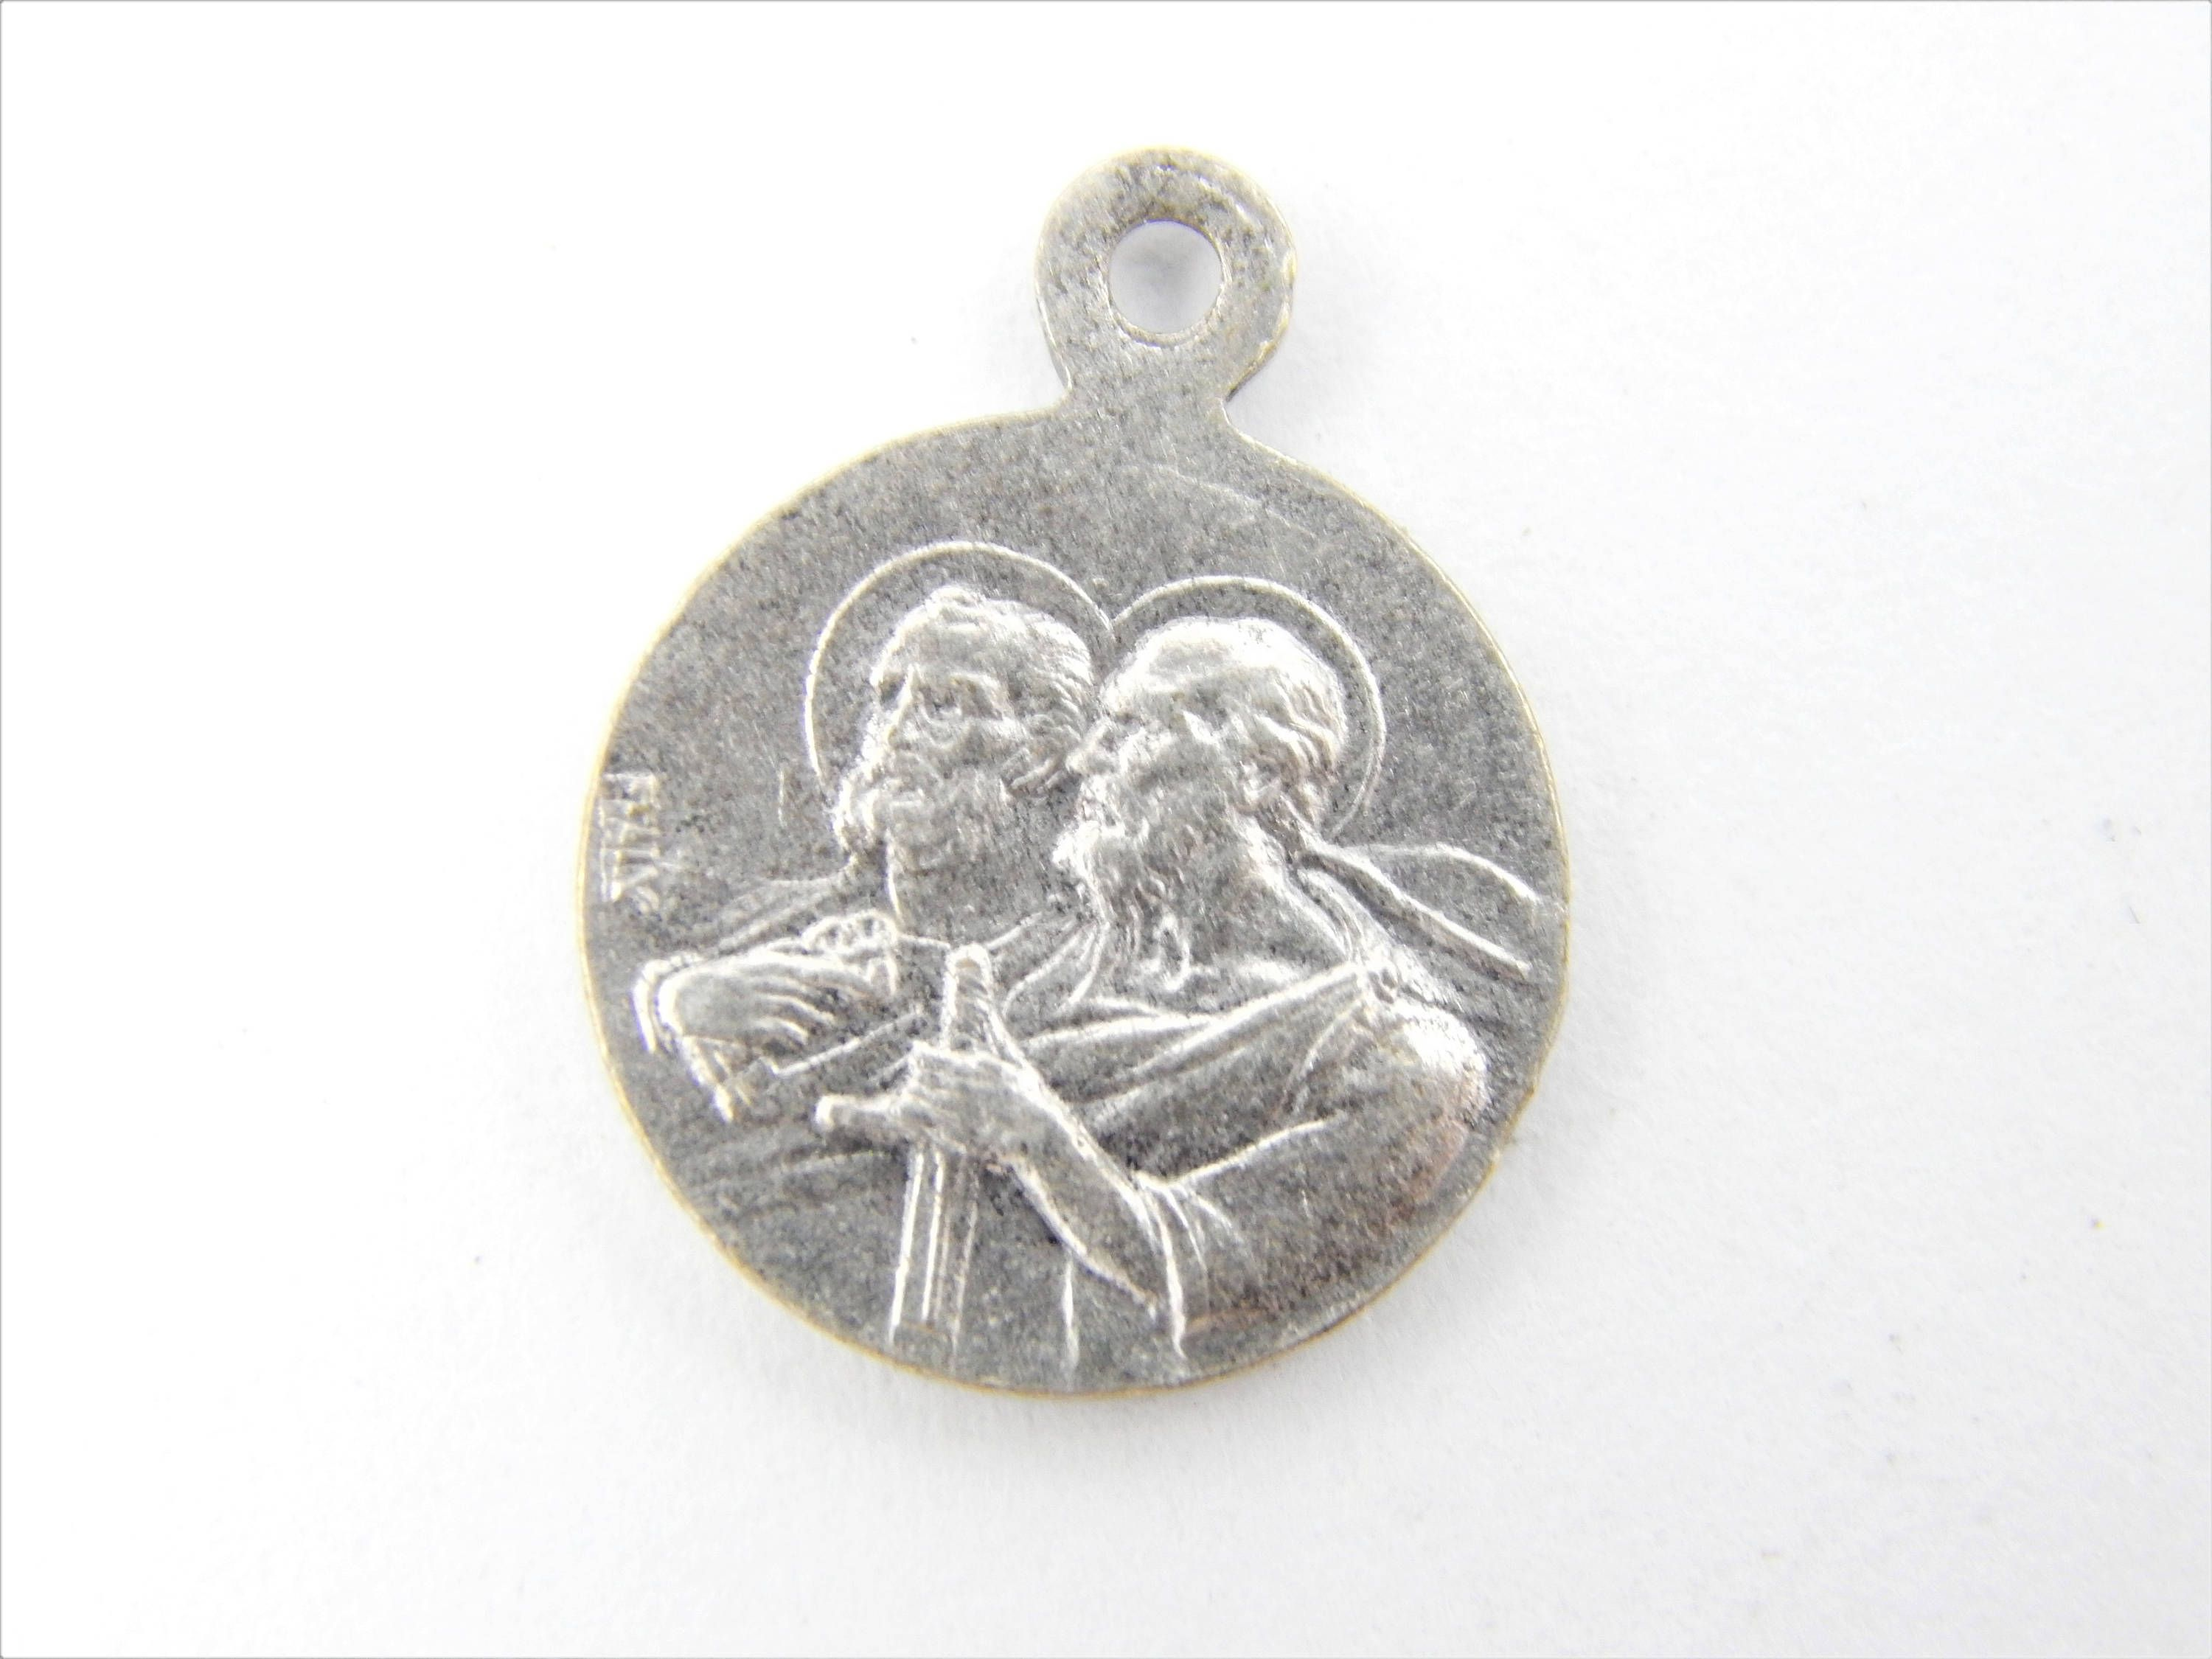 steel saint from medal sterling medallion christopher stainless with silver dp manufacturer the round